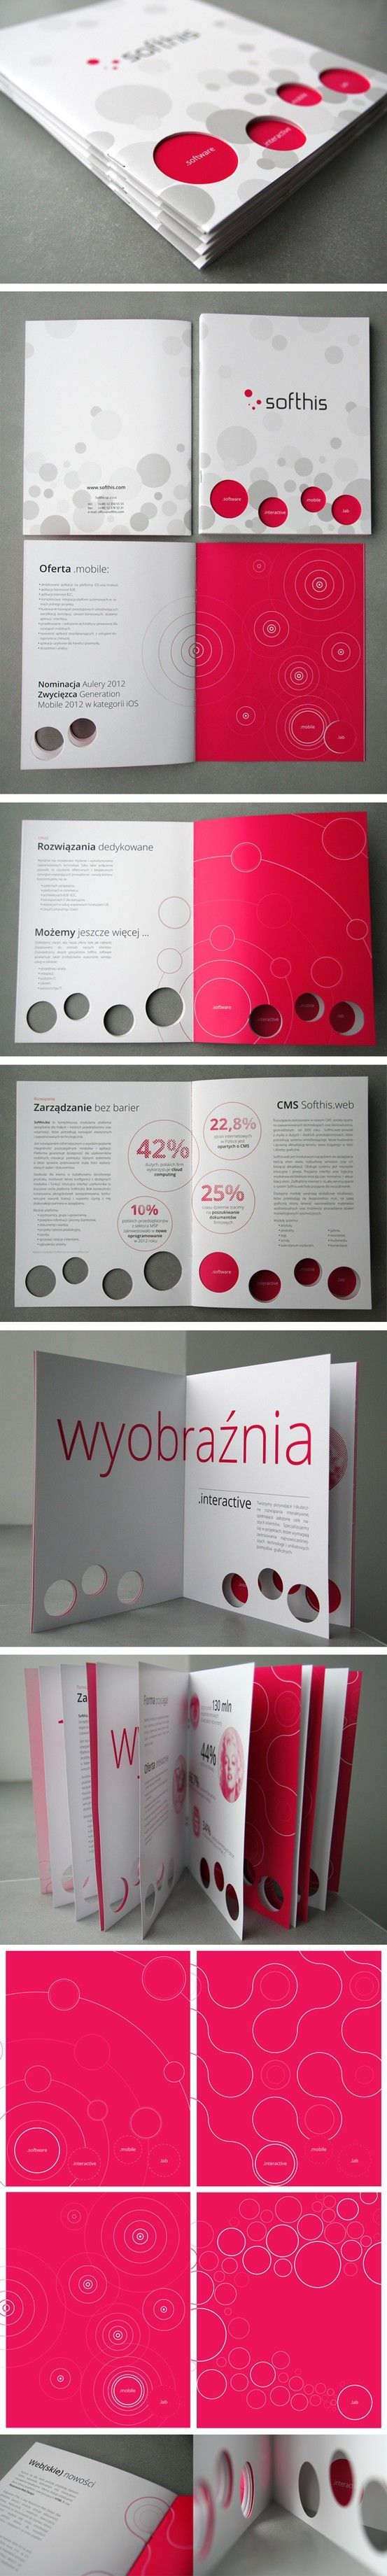 Here's a fascinating #diecut #brochure design to get your creative juices flowing! Customize and order yours at 4OVER4.COM